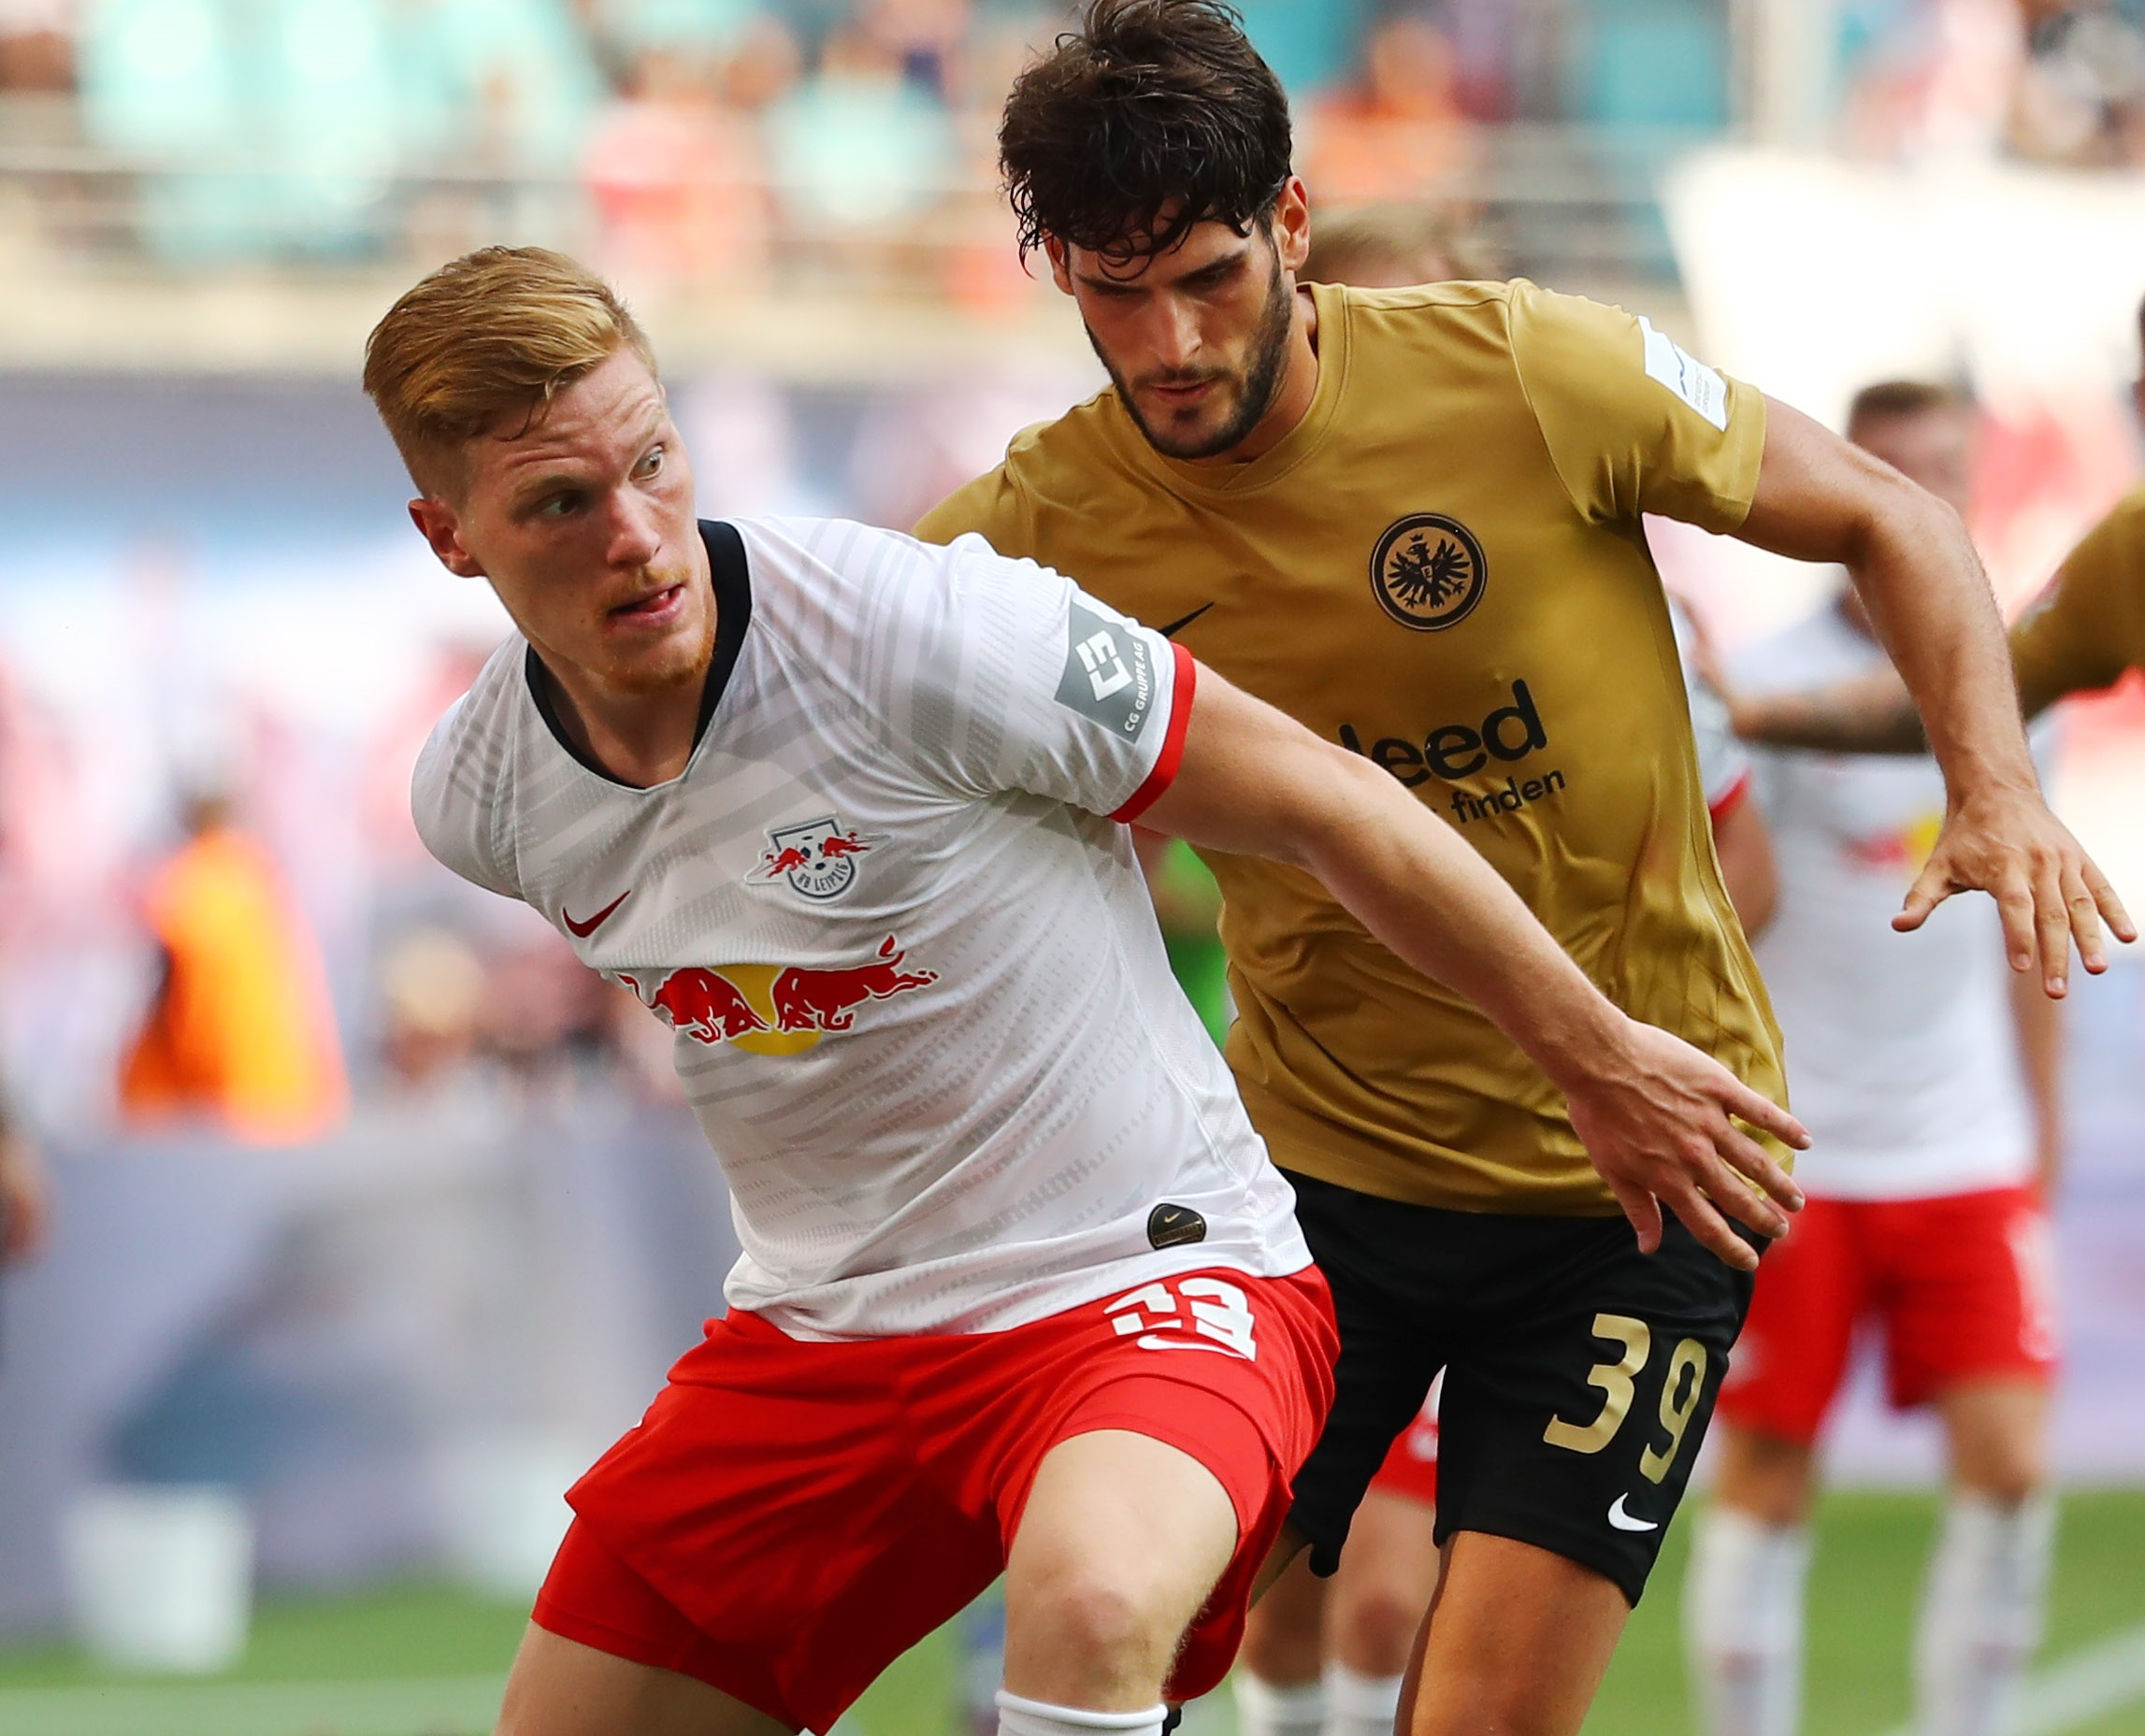 Marcel Halstenberg ruled out of RB Leipzig's clash with Hertha